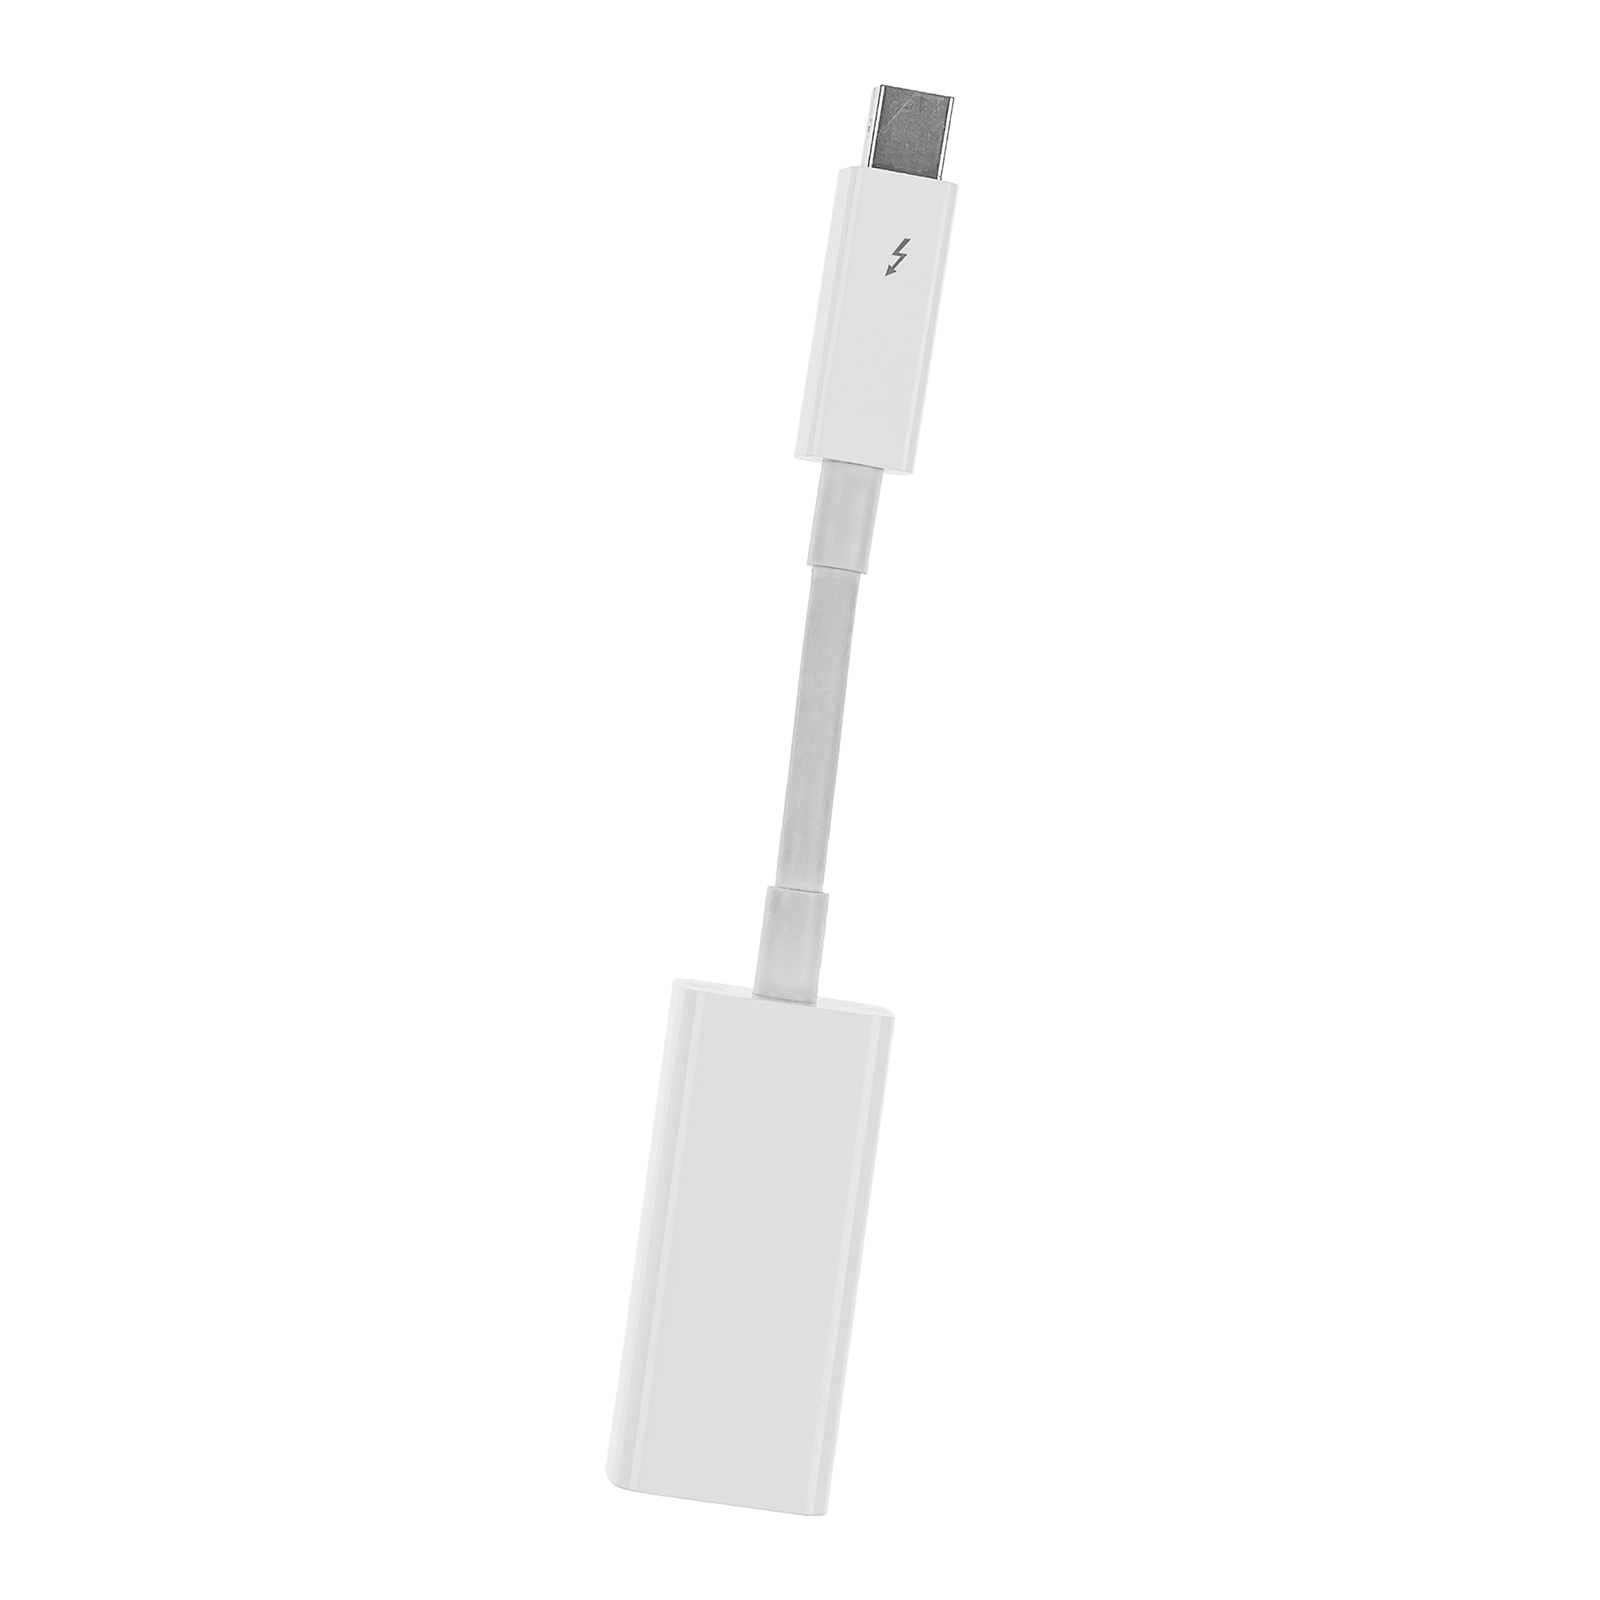 Apple Thunderbolt to Firewire 800 Adapter